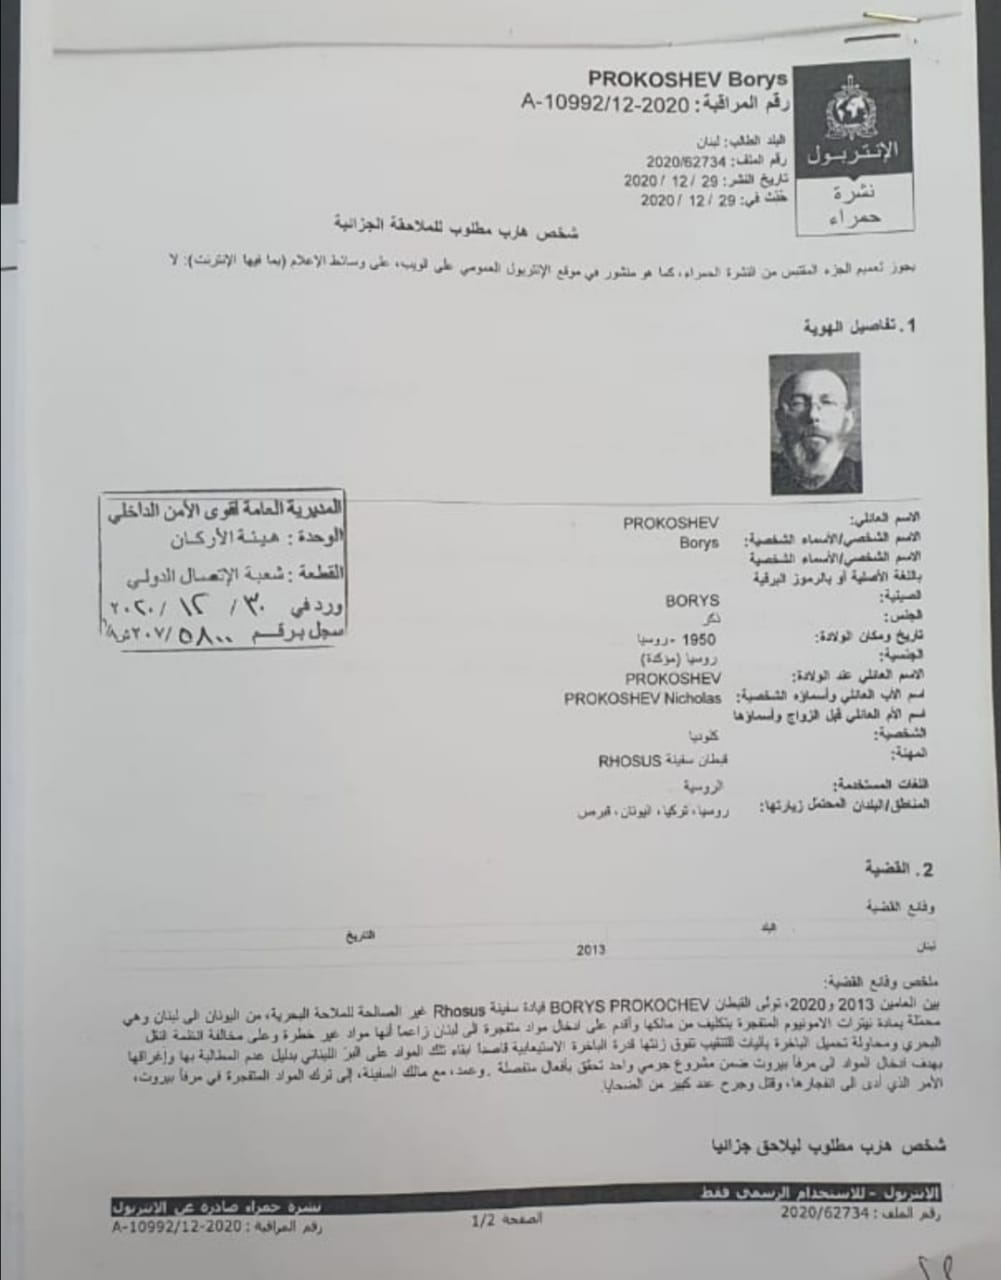 Interpol issued Red Notices for 3 individuals in relation to the MV Rhosus ship that brought ammonium nitrate to Beirut.